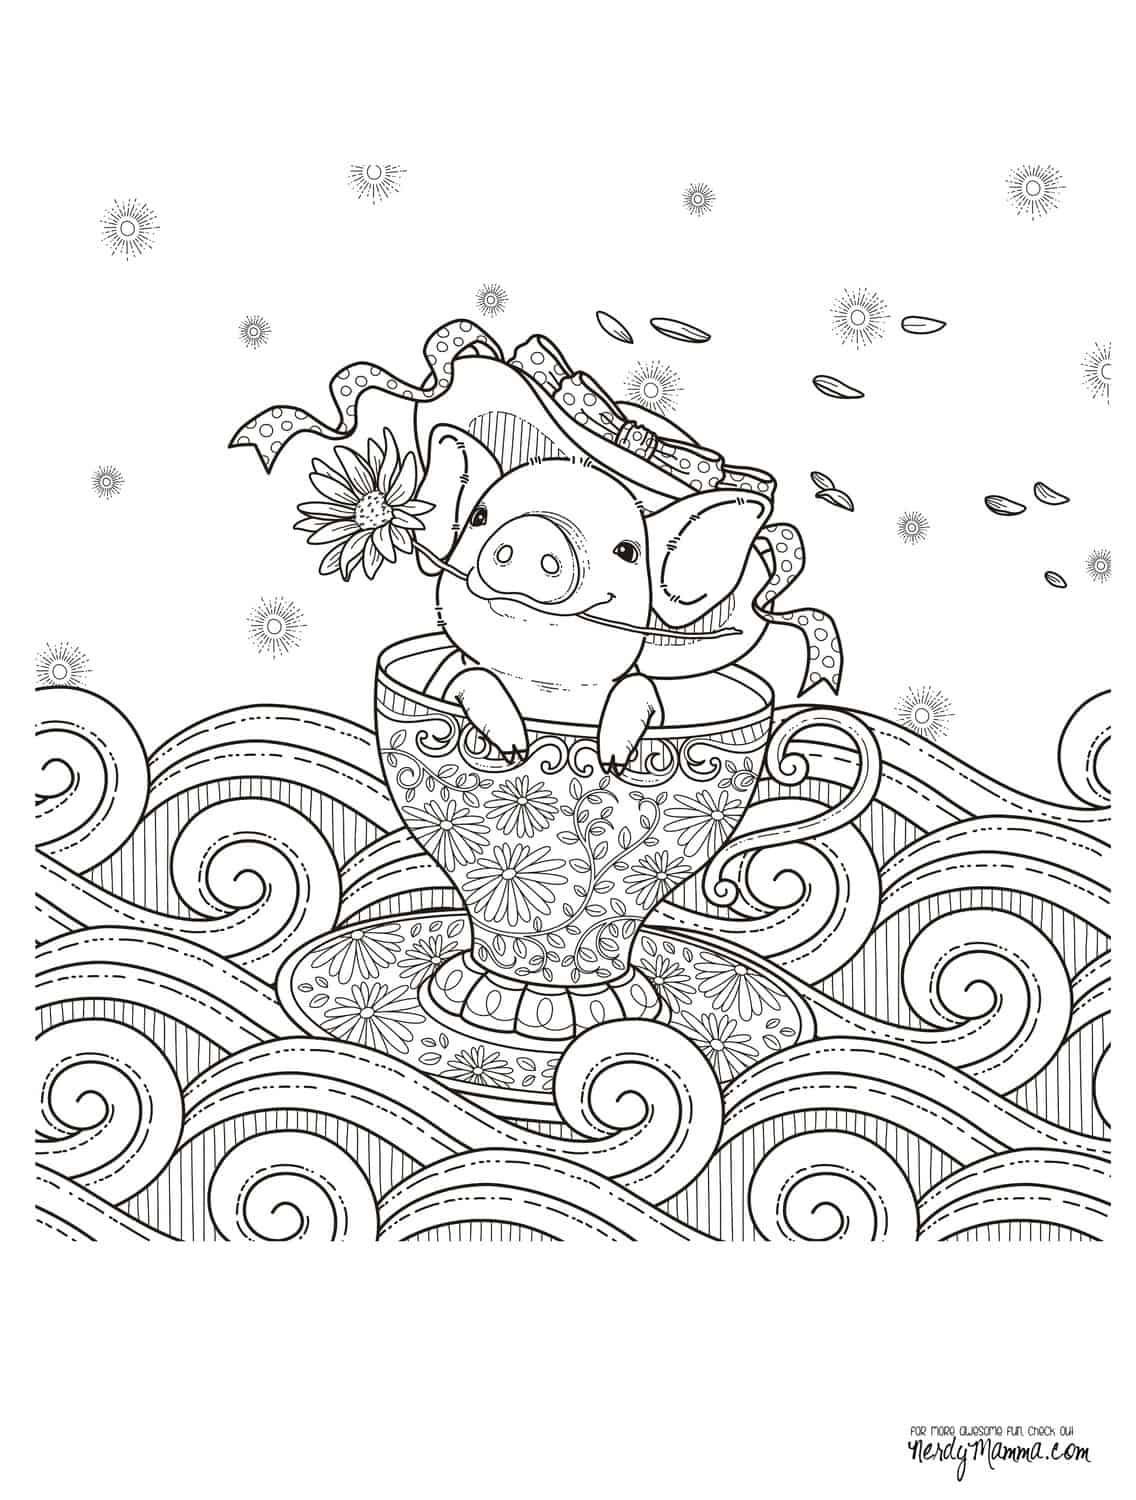 Coloring pages for adults cute - Get The Free Downloadable Jpg Here